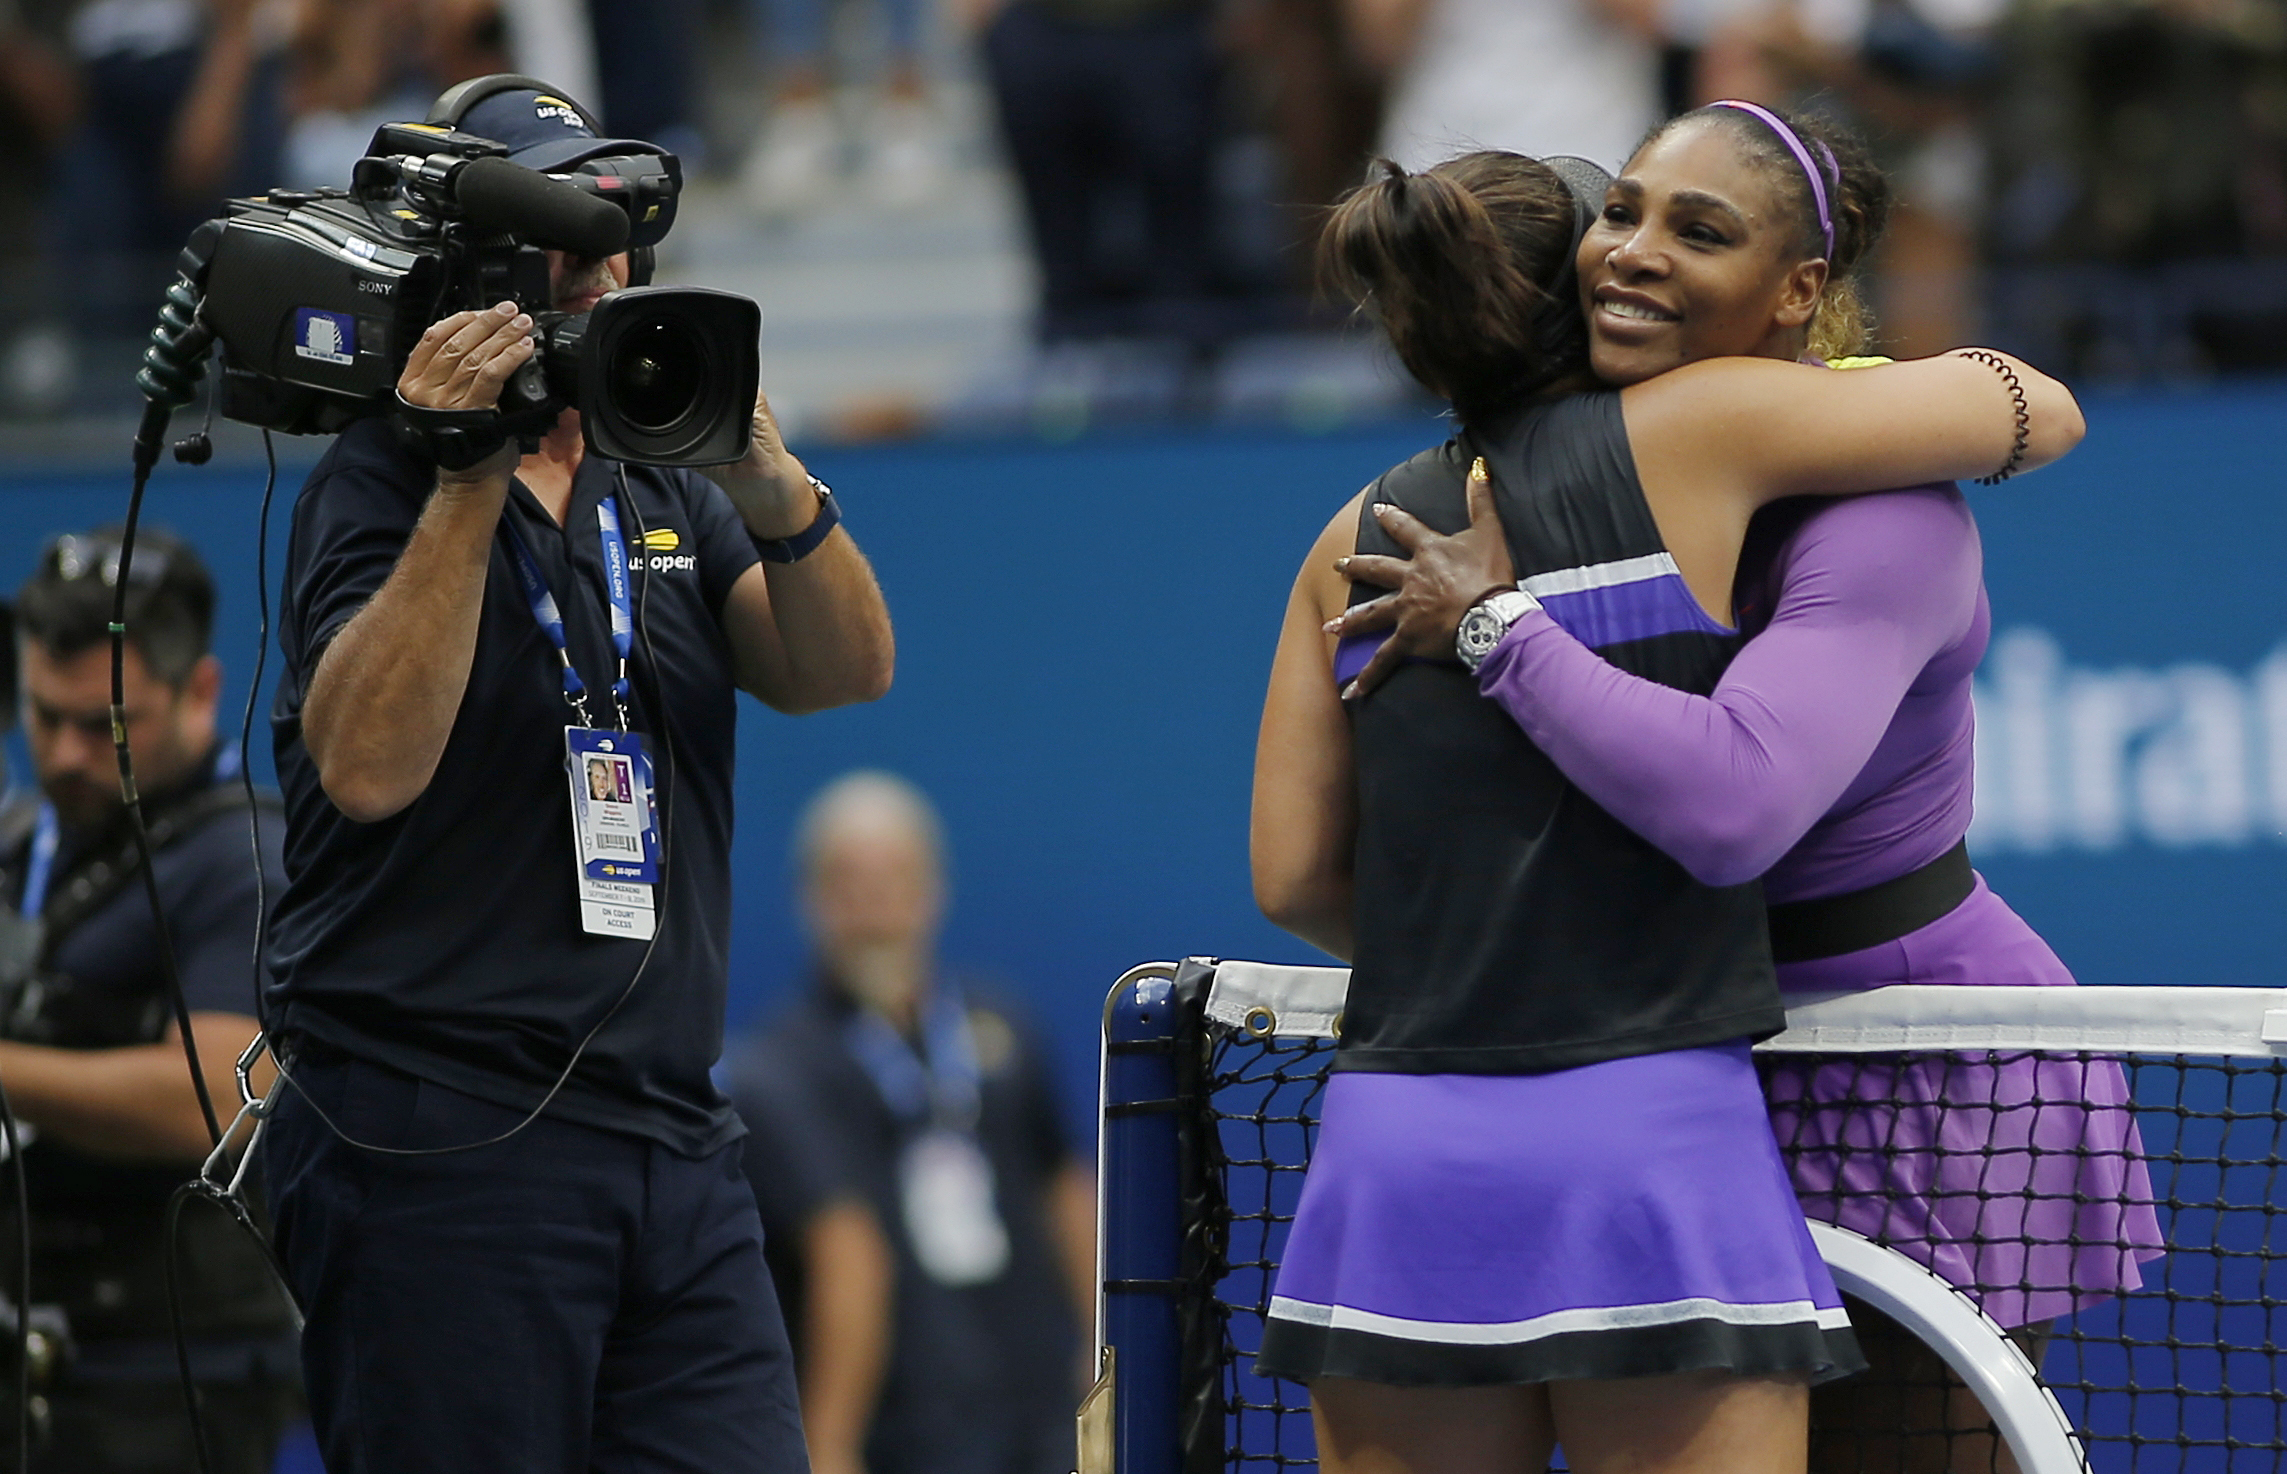 Serena Williams was not able to capture her 24th Grand Slam, losing to Bainca Andreescu in straight sets in the US Open final.  Photo by The Associated Press.